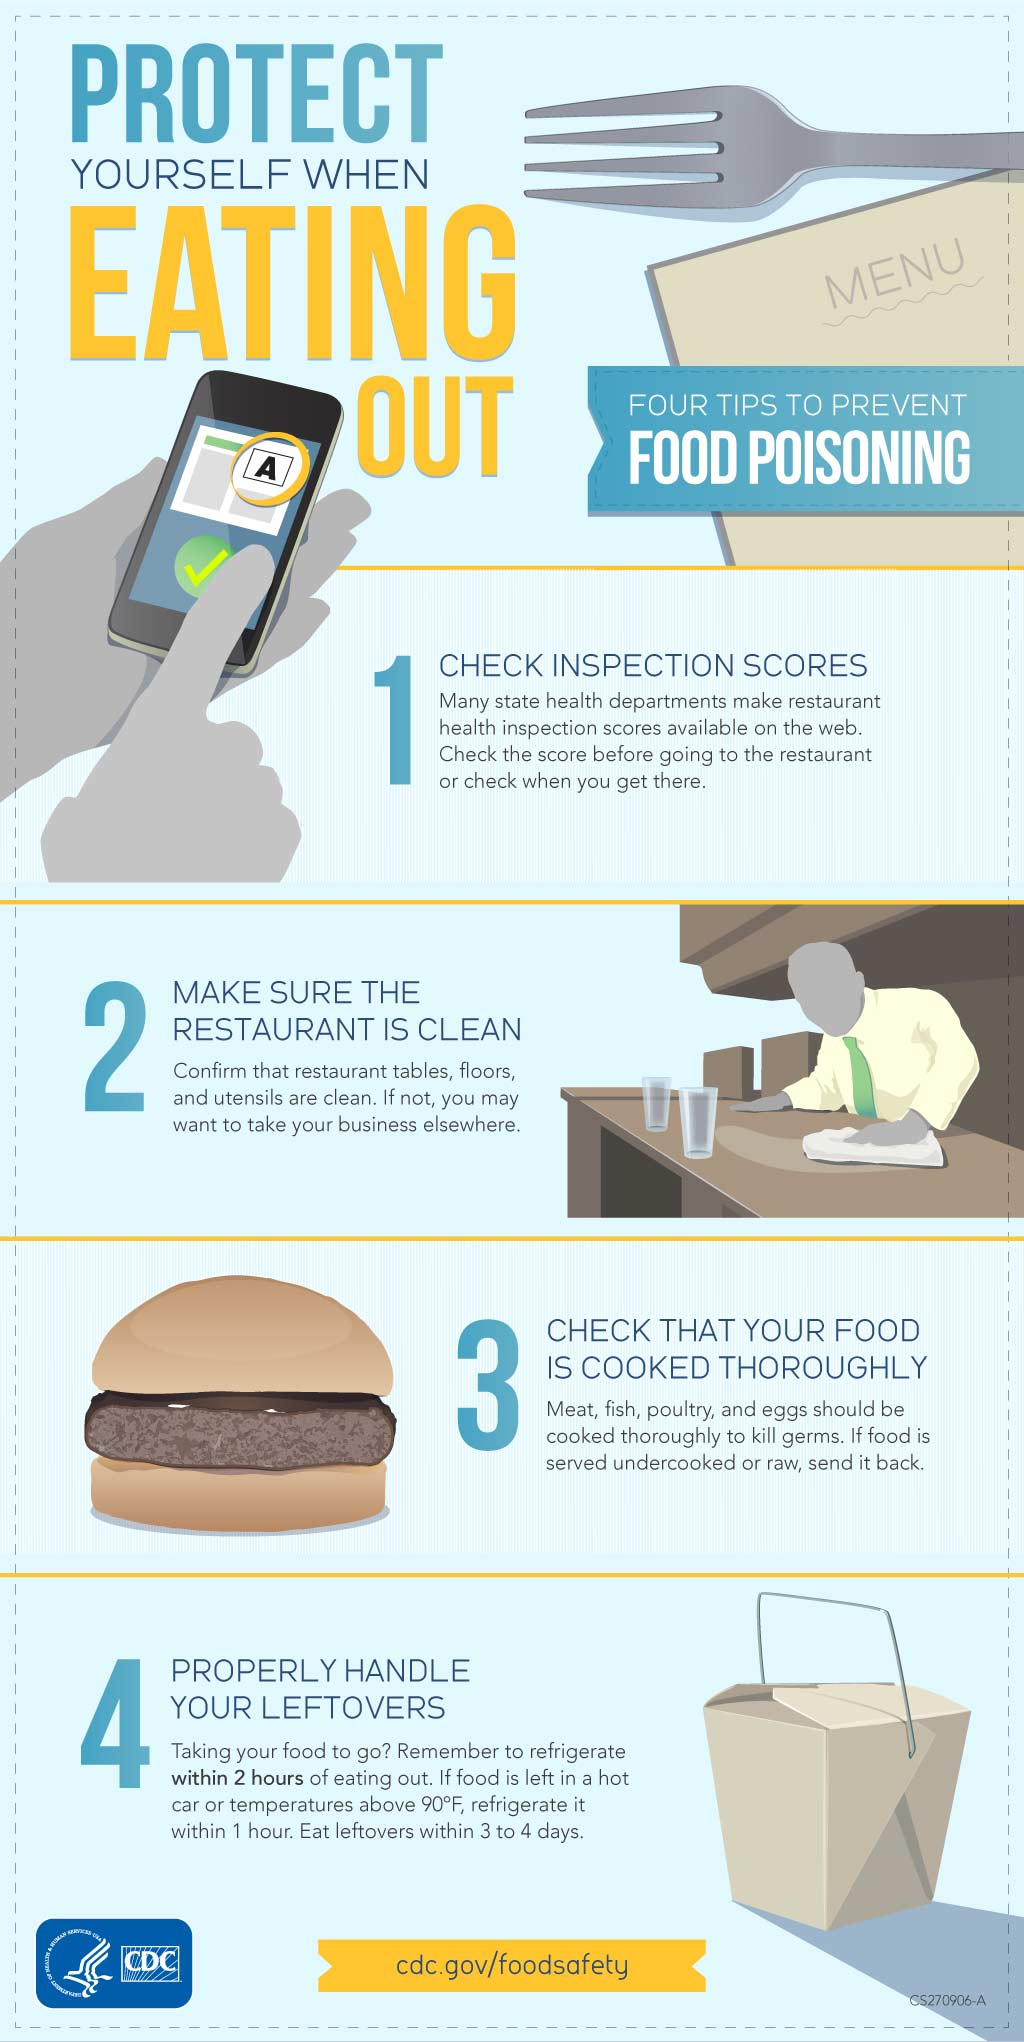 CDC - Food Safety - Protect Yourself When Eating Out